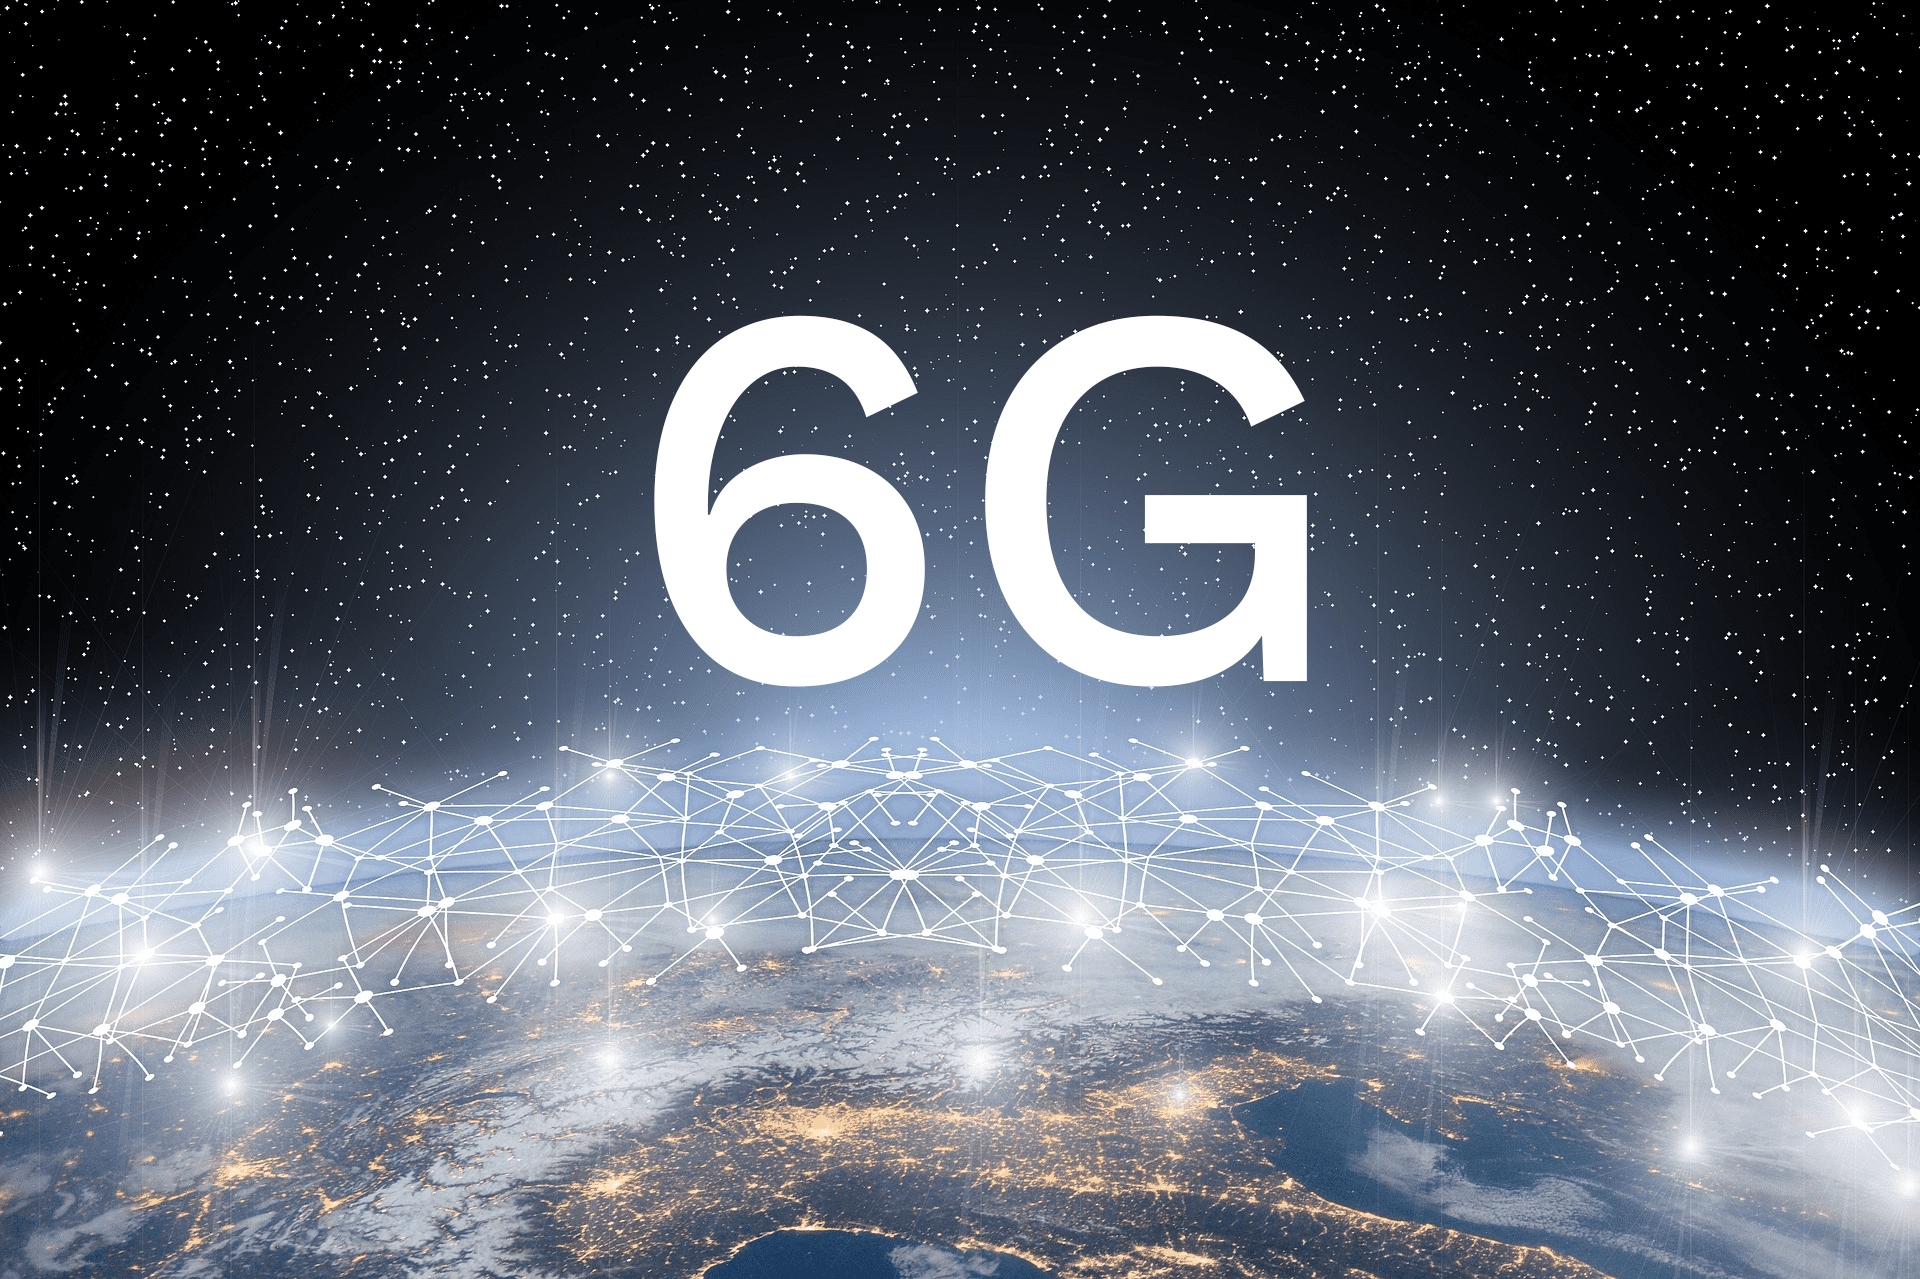 Tokyo starts preparations to introduce 6G communication